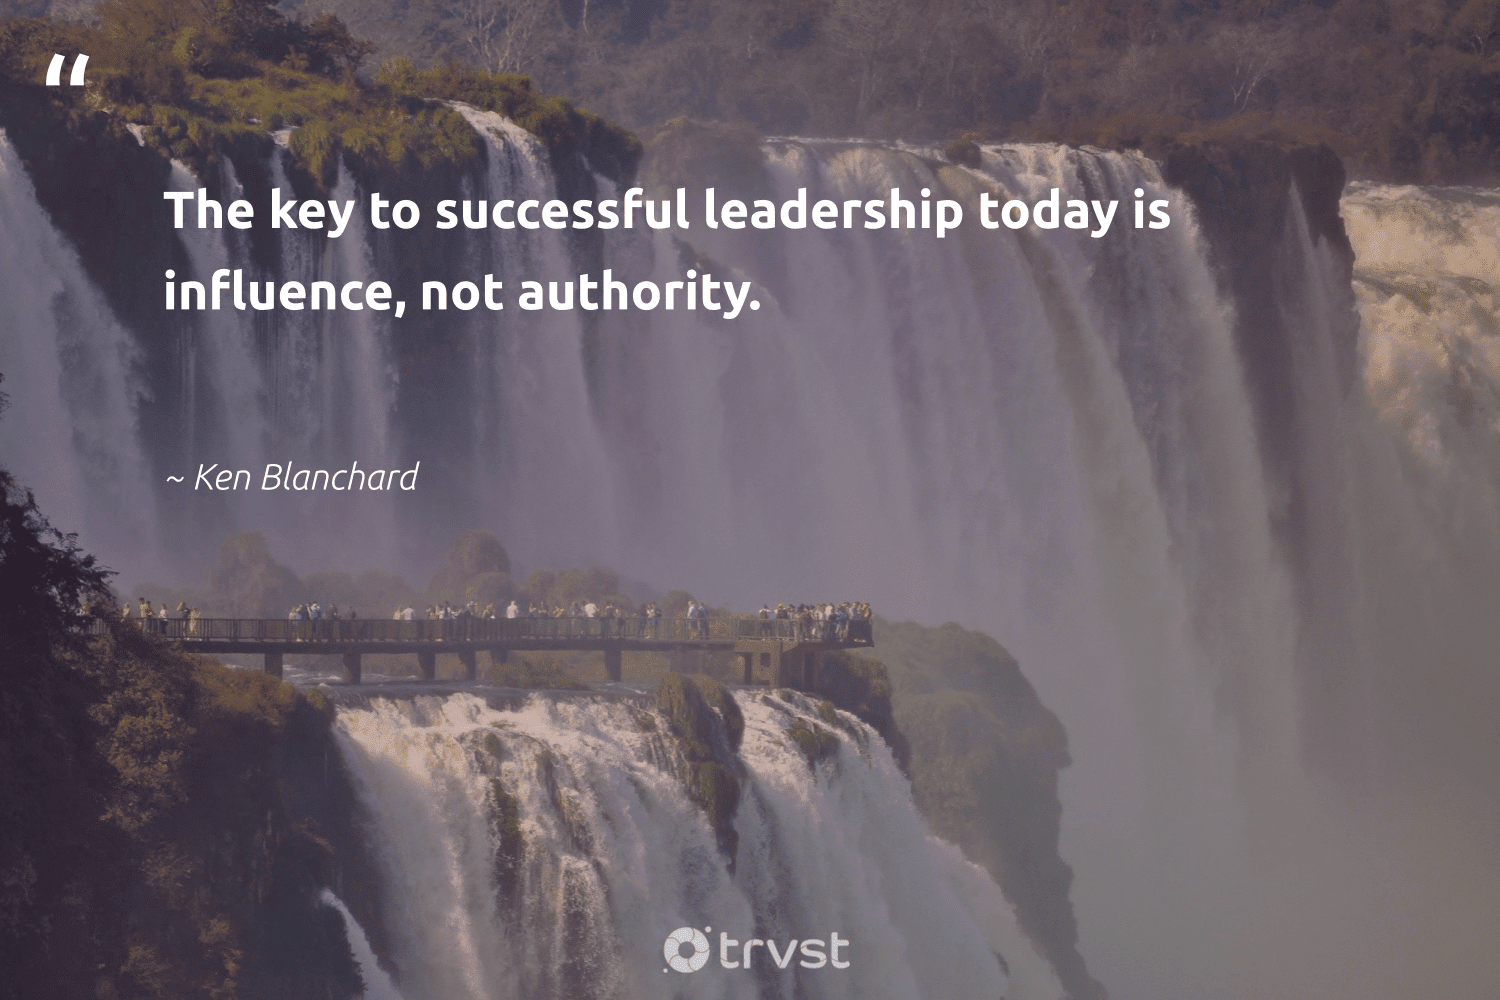 """""""The key to successful leadership today is influence, not authority.""""  - Ken Blanchard #trvst #quotes #leadership #influence #leadershipqualities #nevergiveup #softskills #bethechange #leadershipdevelopment #futureofwork #begreat #takeaction"""